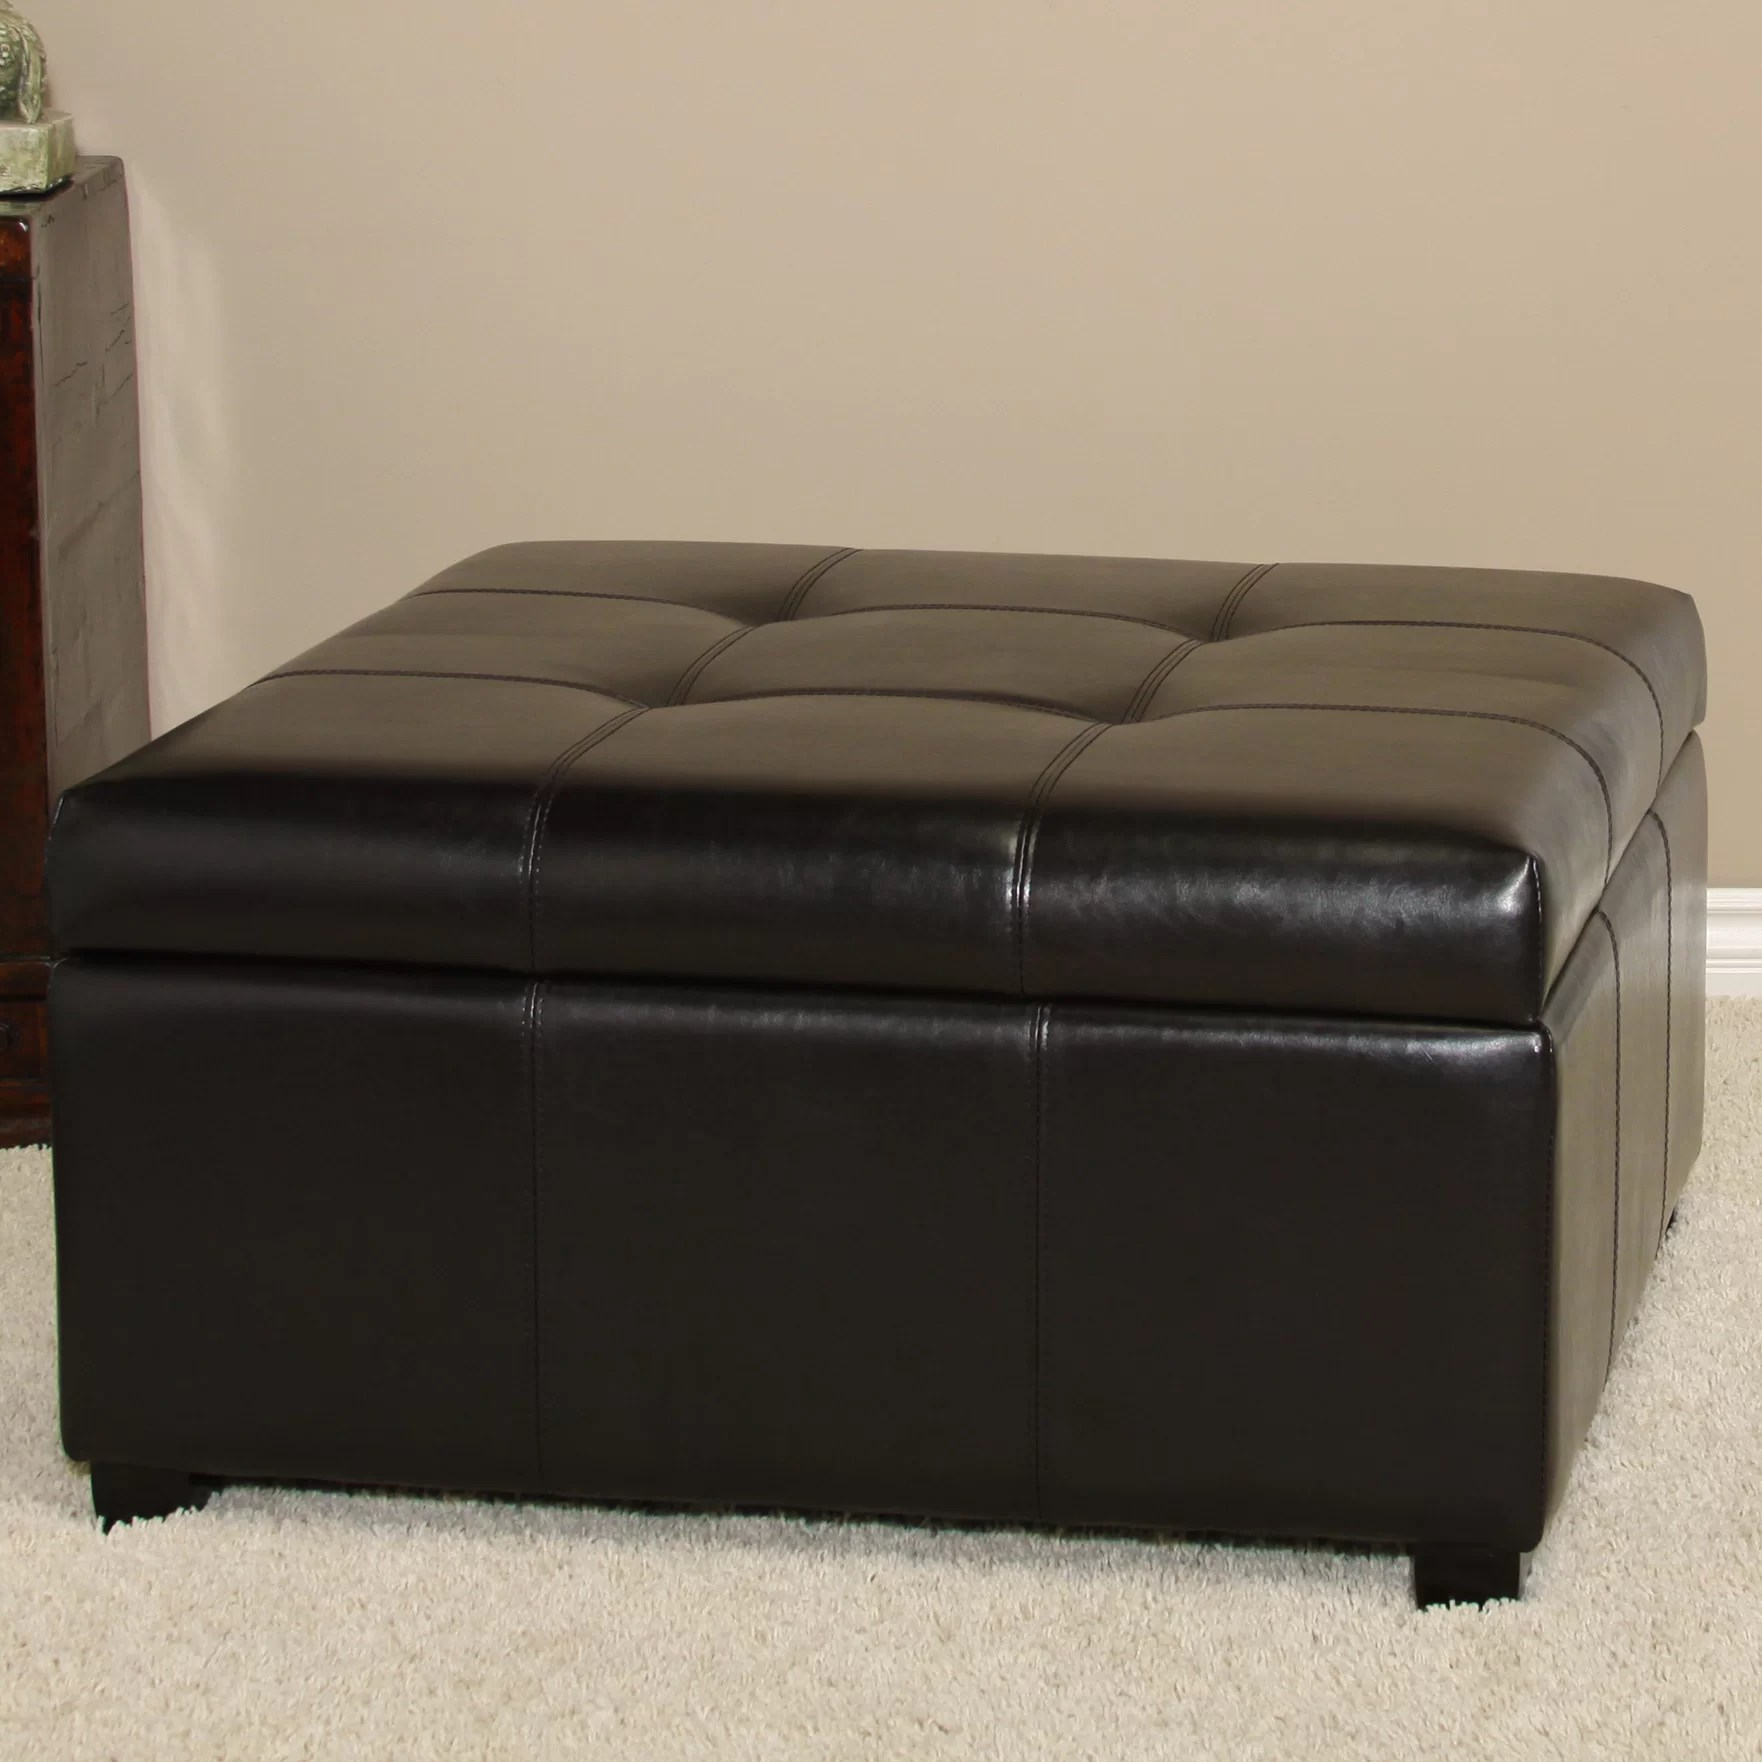 Storage Pouf Andover Mills Upholstered Storage Ottoman And Reviews Wayfair